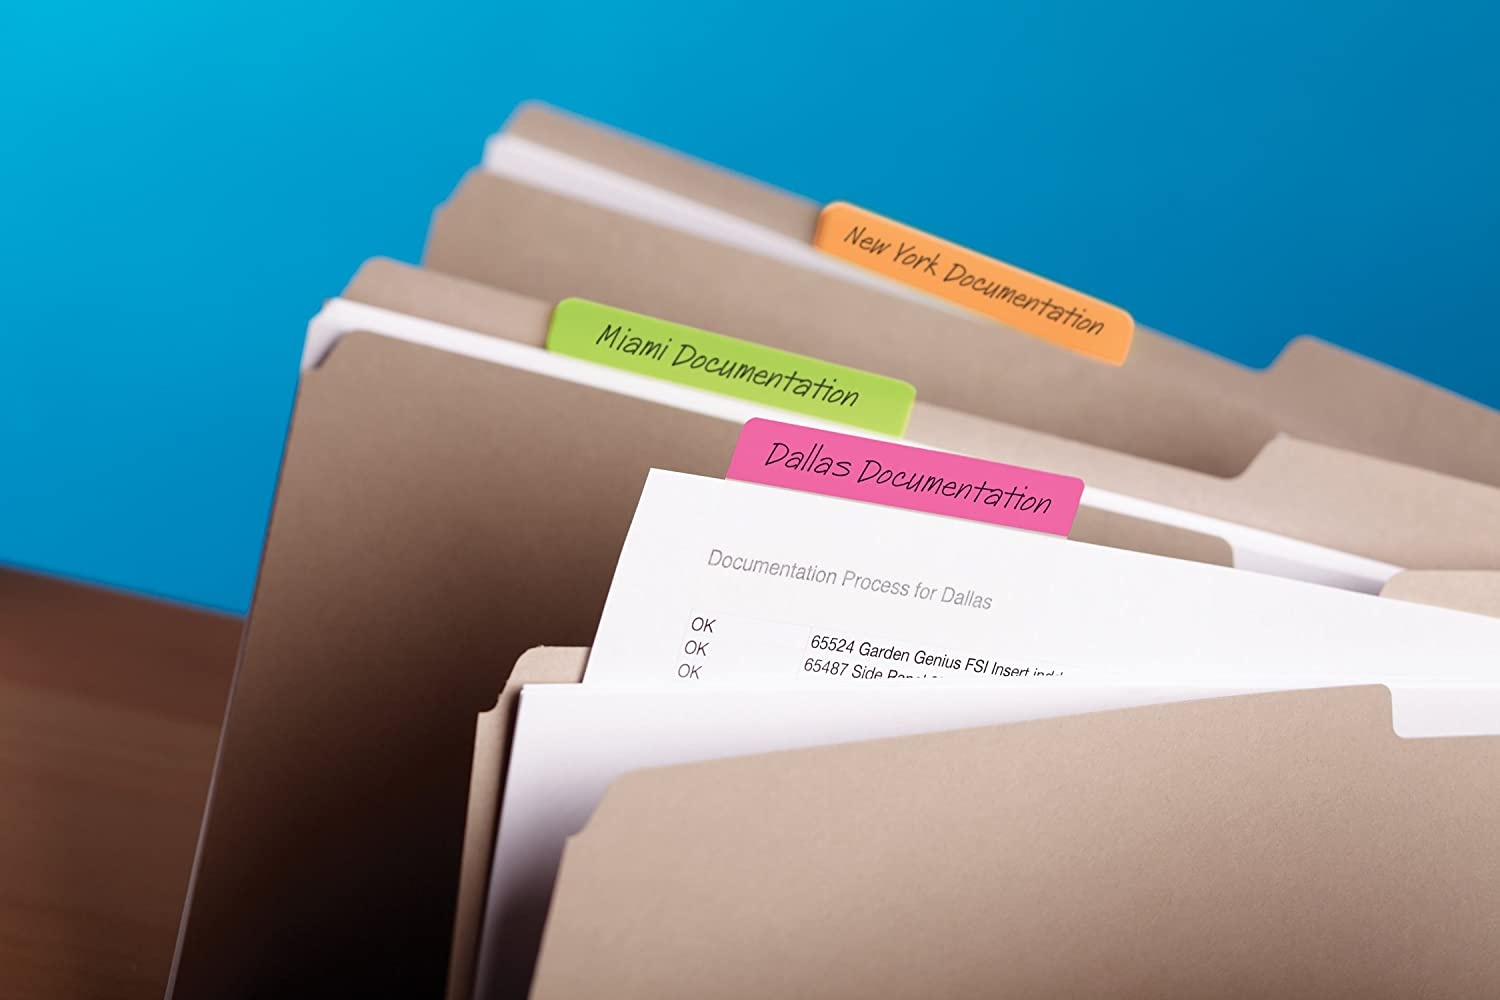 Post-it Tabs, 3 in, Solid, Assorted Bright Colors, Durable, Writable, Repositionable, Sticks Securely, Removes Cleanly, 6 Tabs/Color, 4 Colors, 24 Tabs/Pack, (686-PLOY3IN) : Color Coding Labels : Office Products